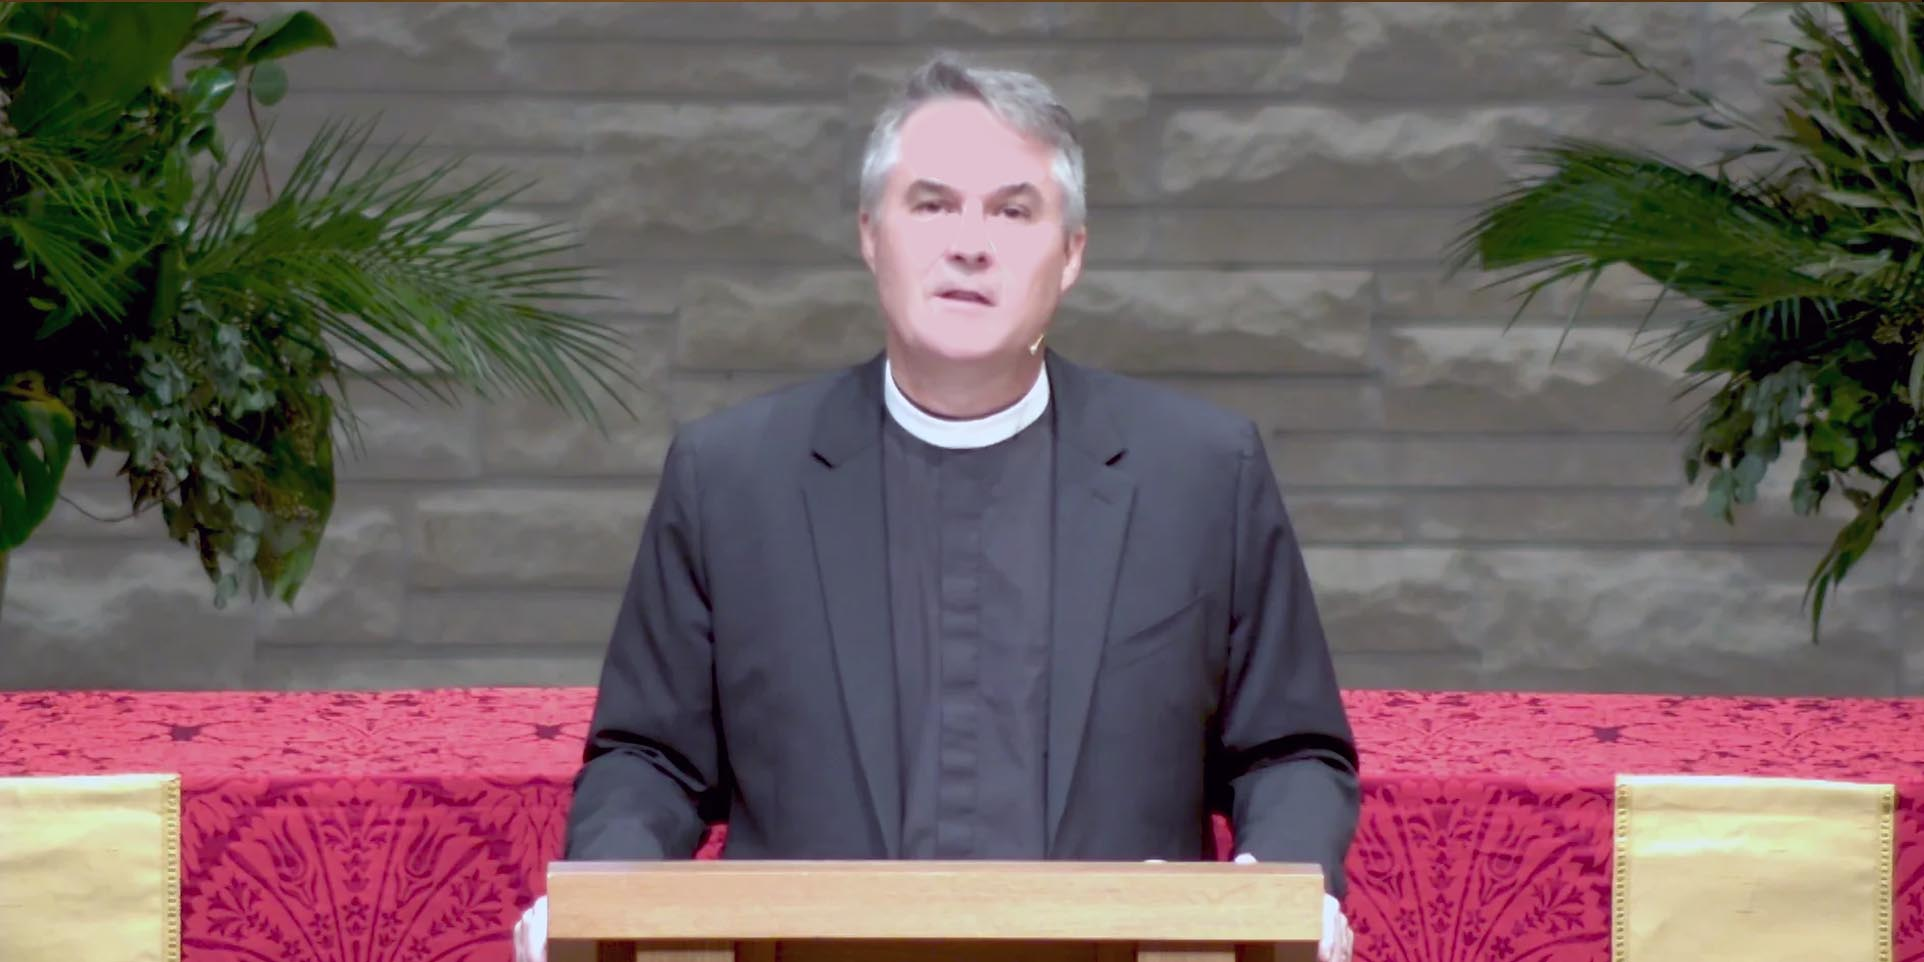 Into the Father's Hands - Sermon by the Rev. Charlie Holt